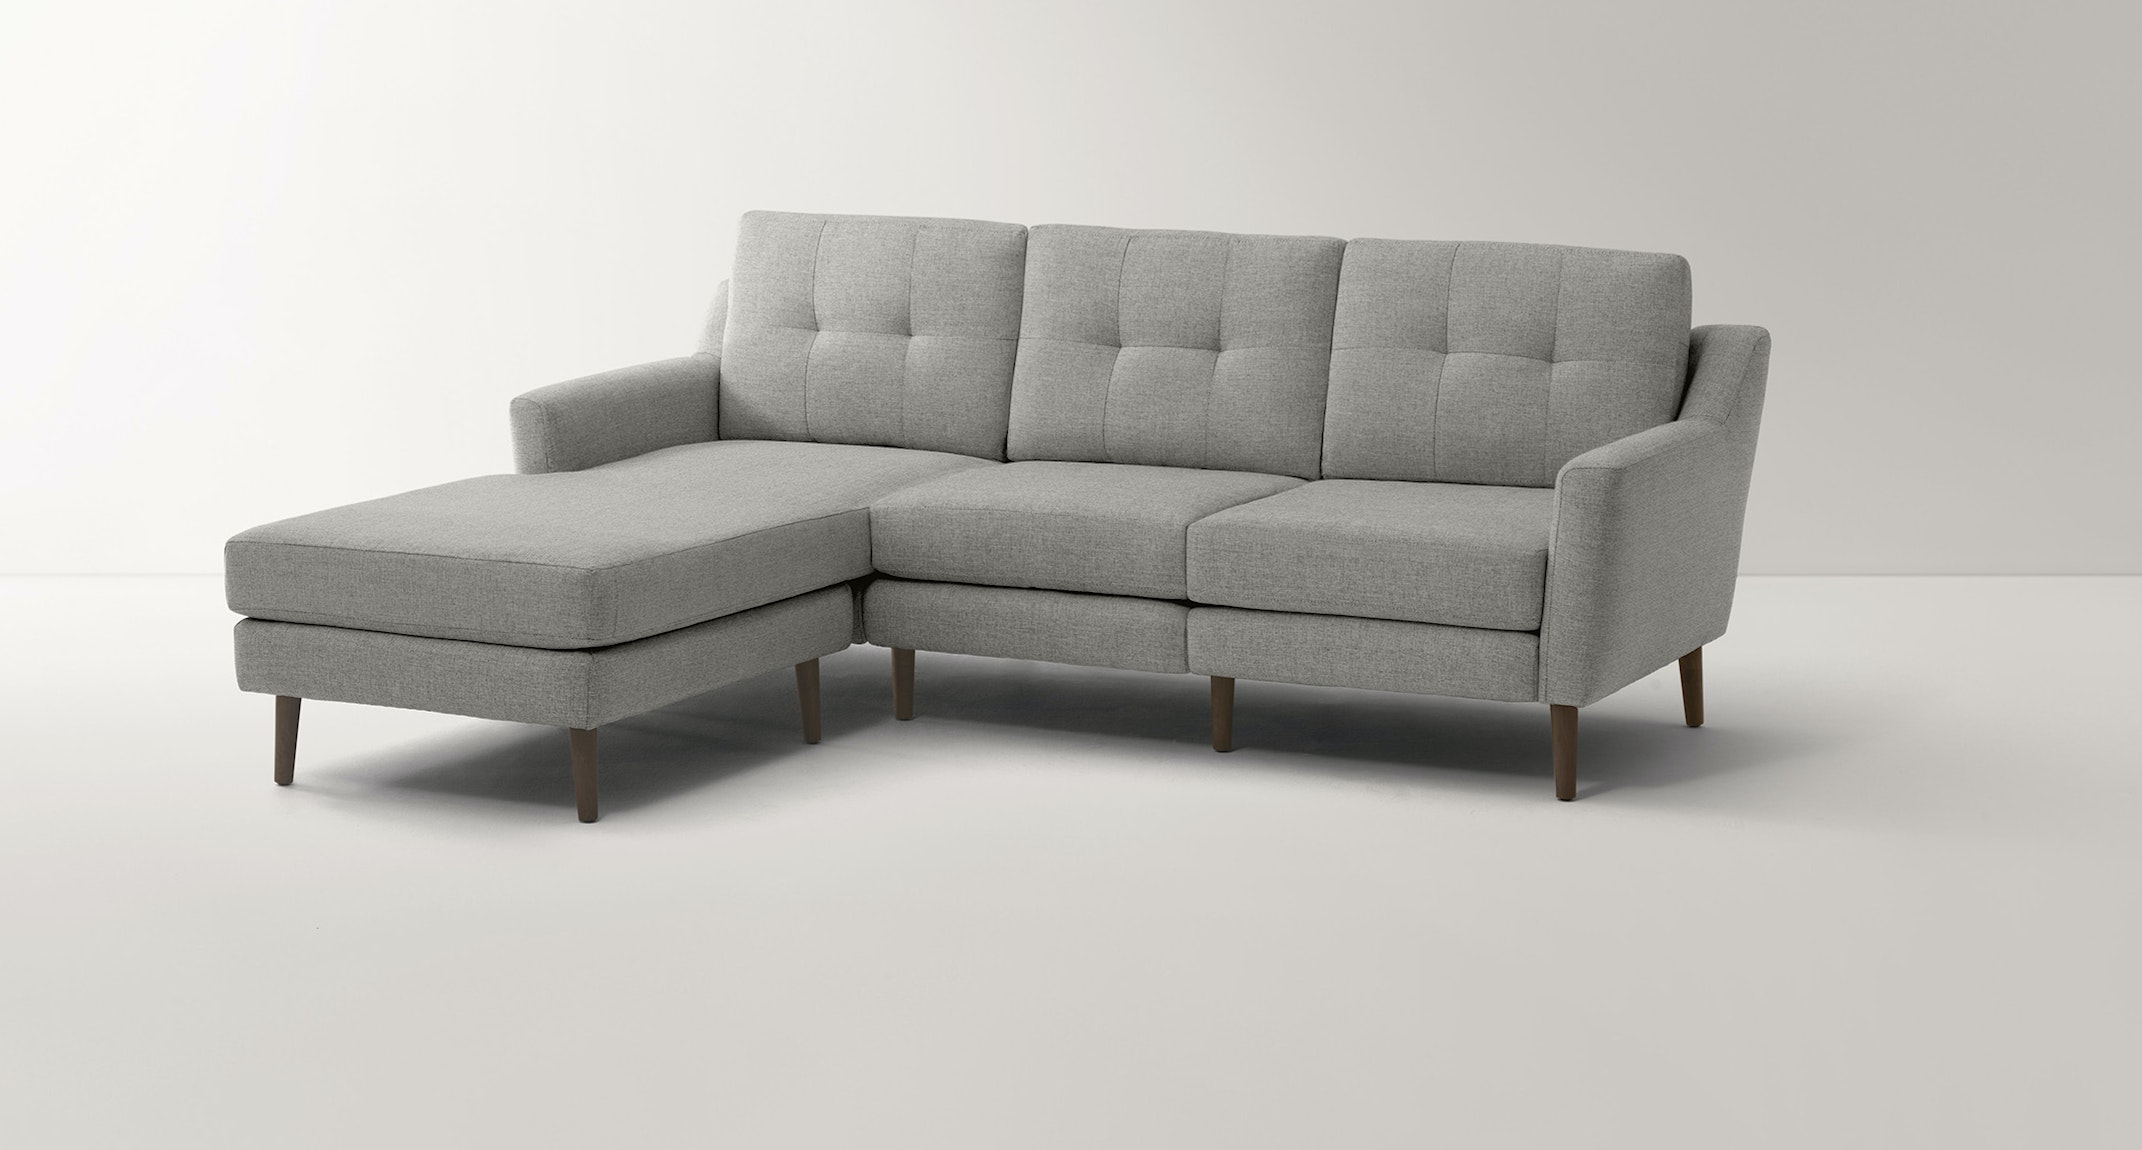 The Sofa With Chaise Custom Furniture Burrow